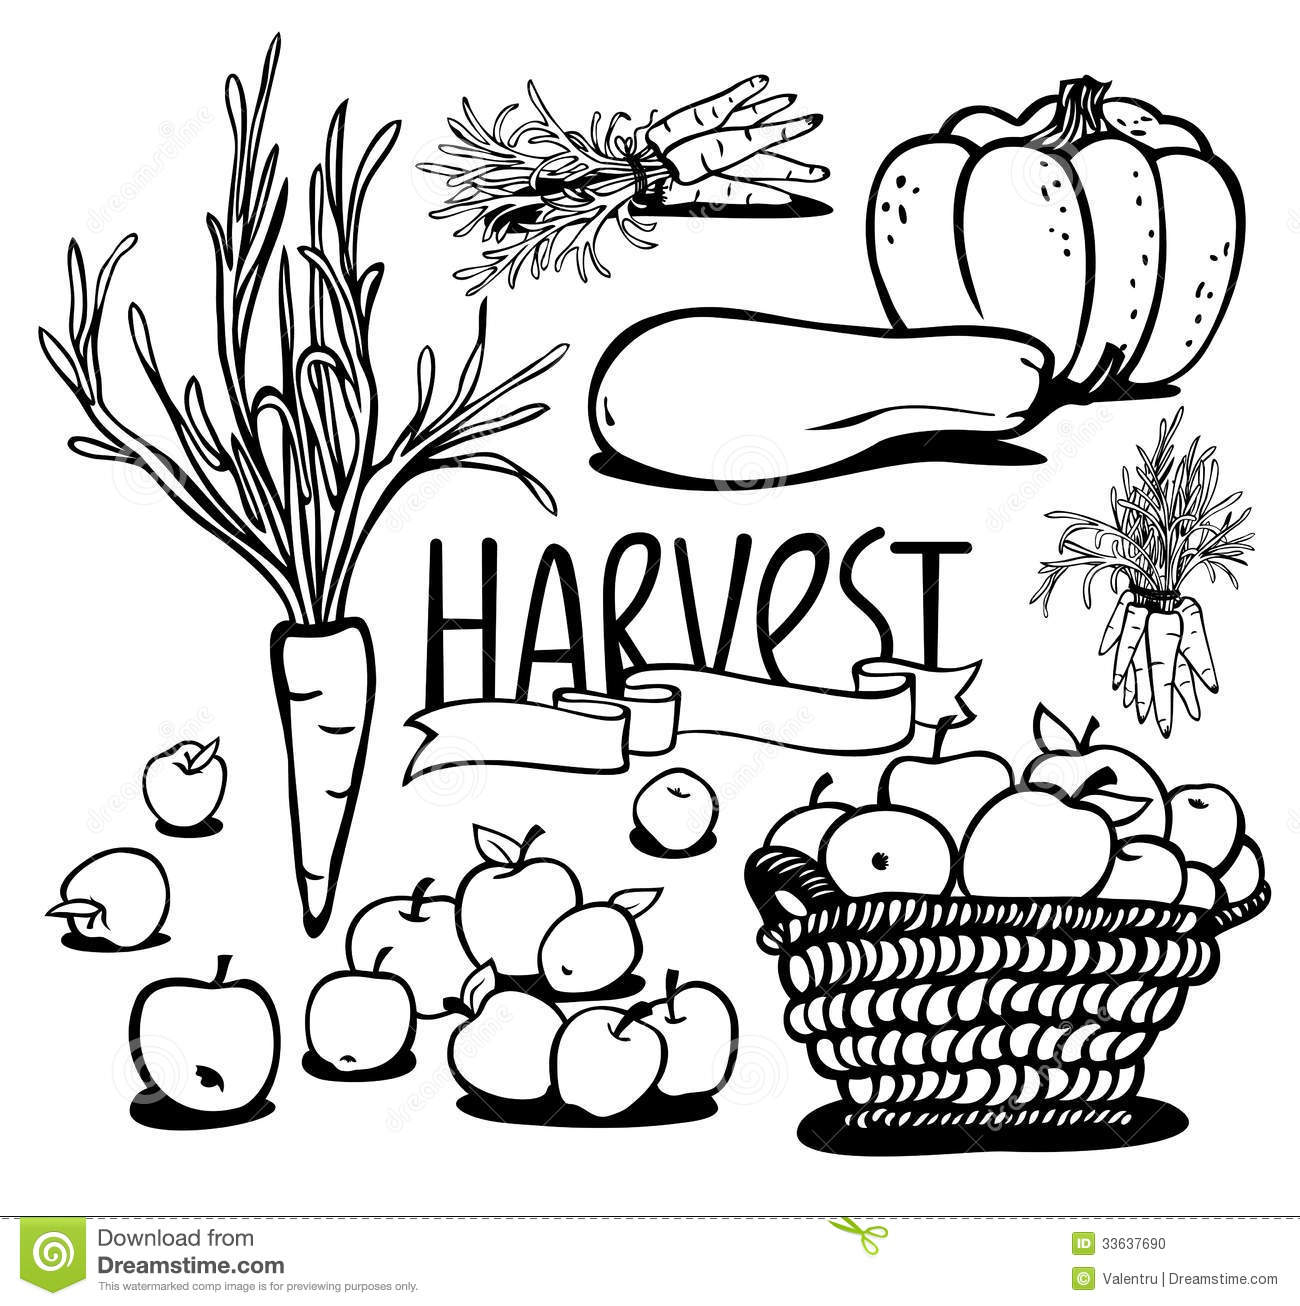 Vegetable and fruits stock vector. Image of nature ...